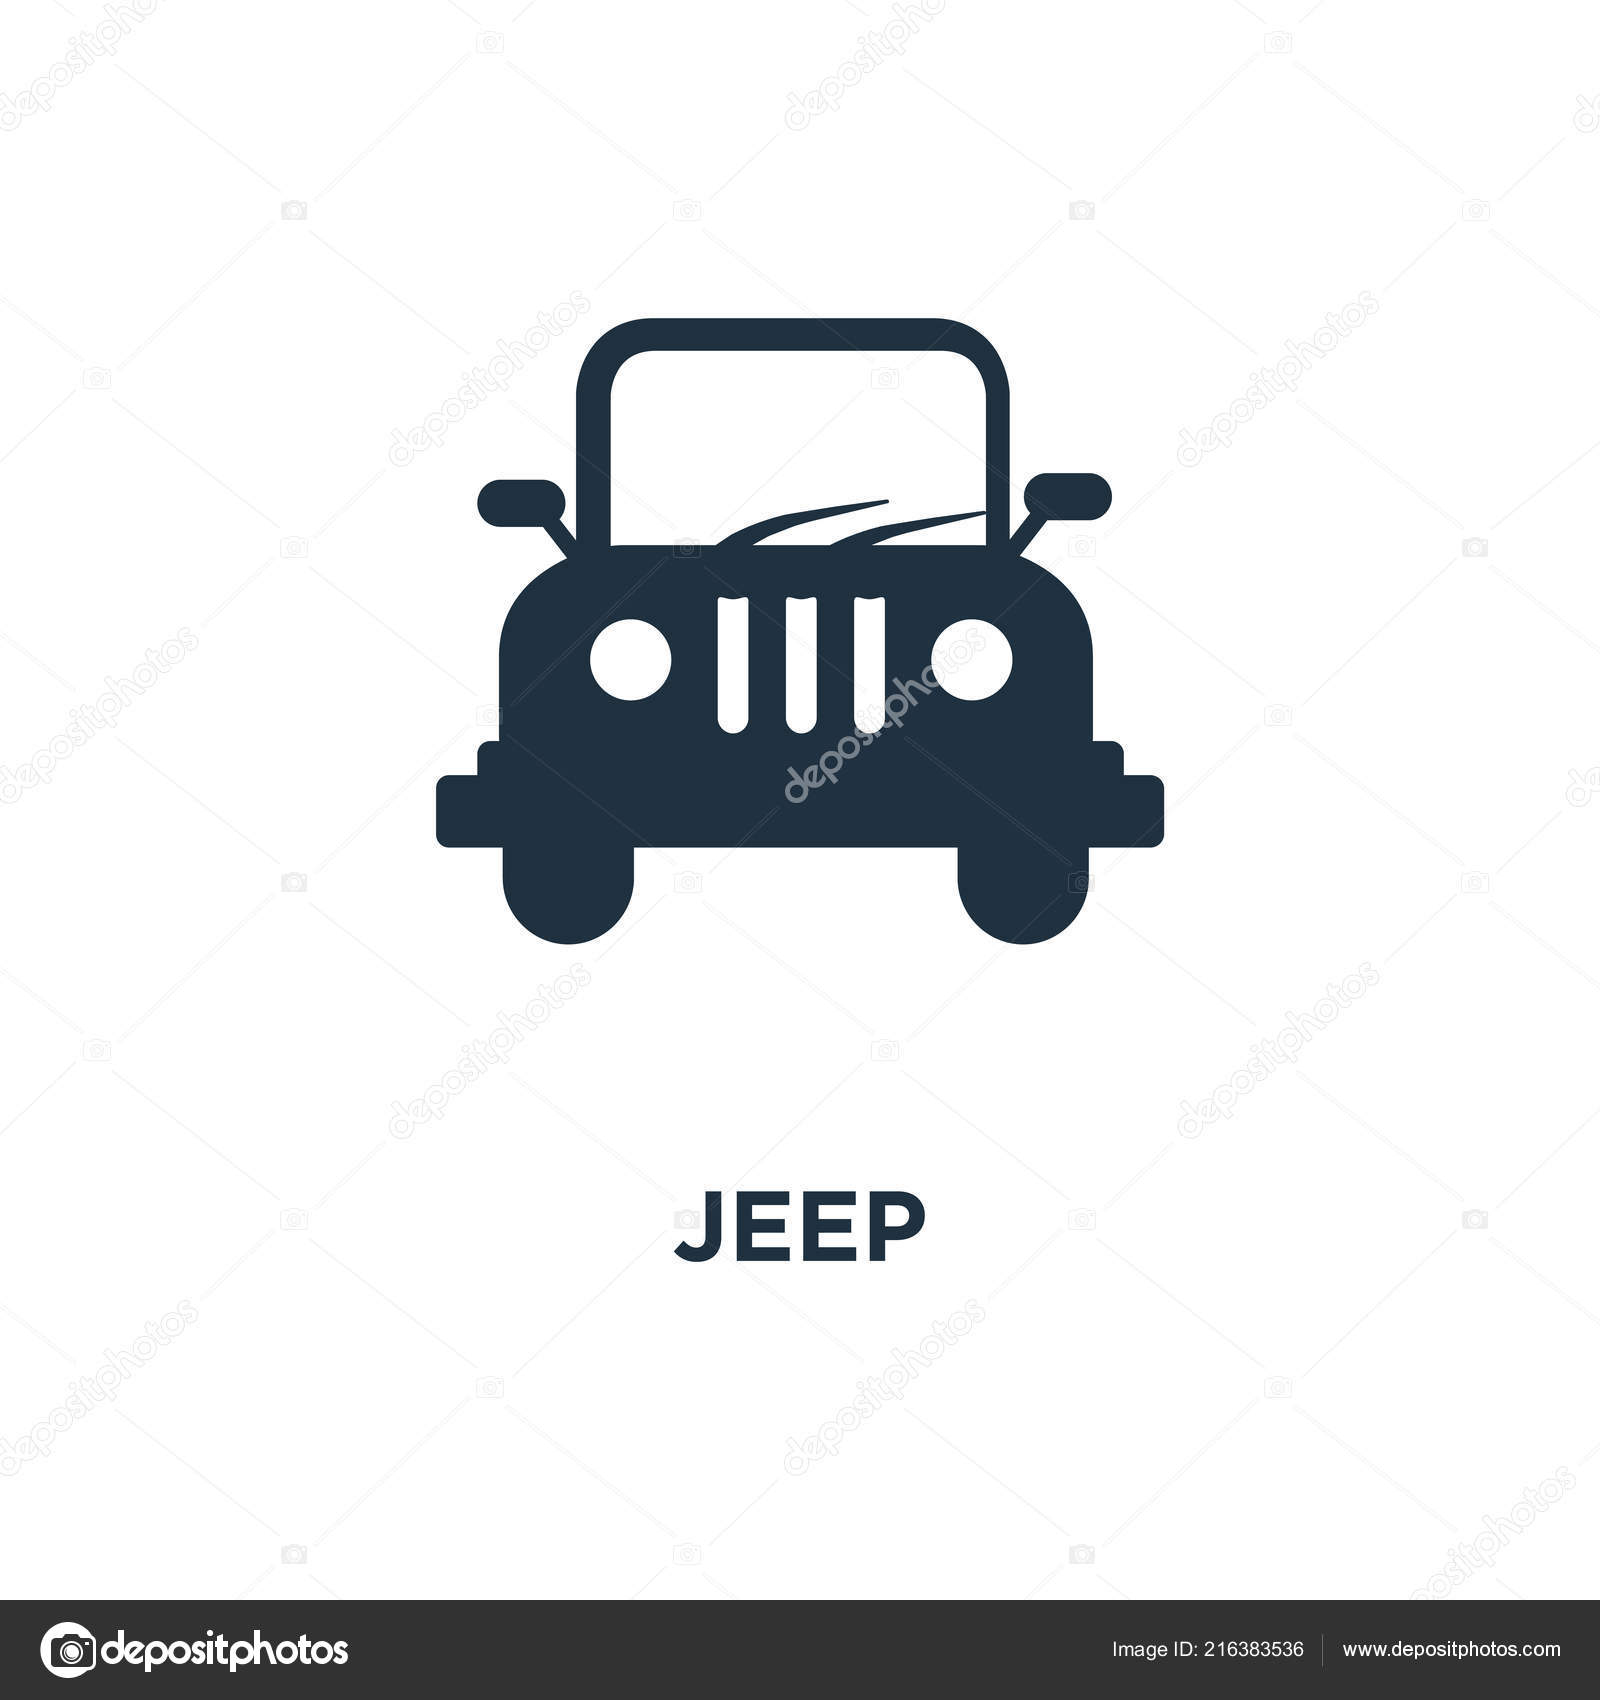 jeep icon black filled